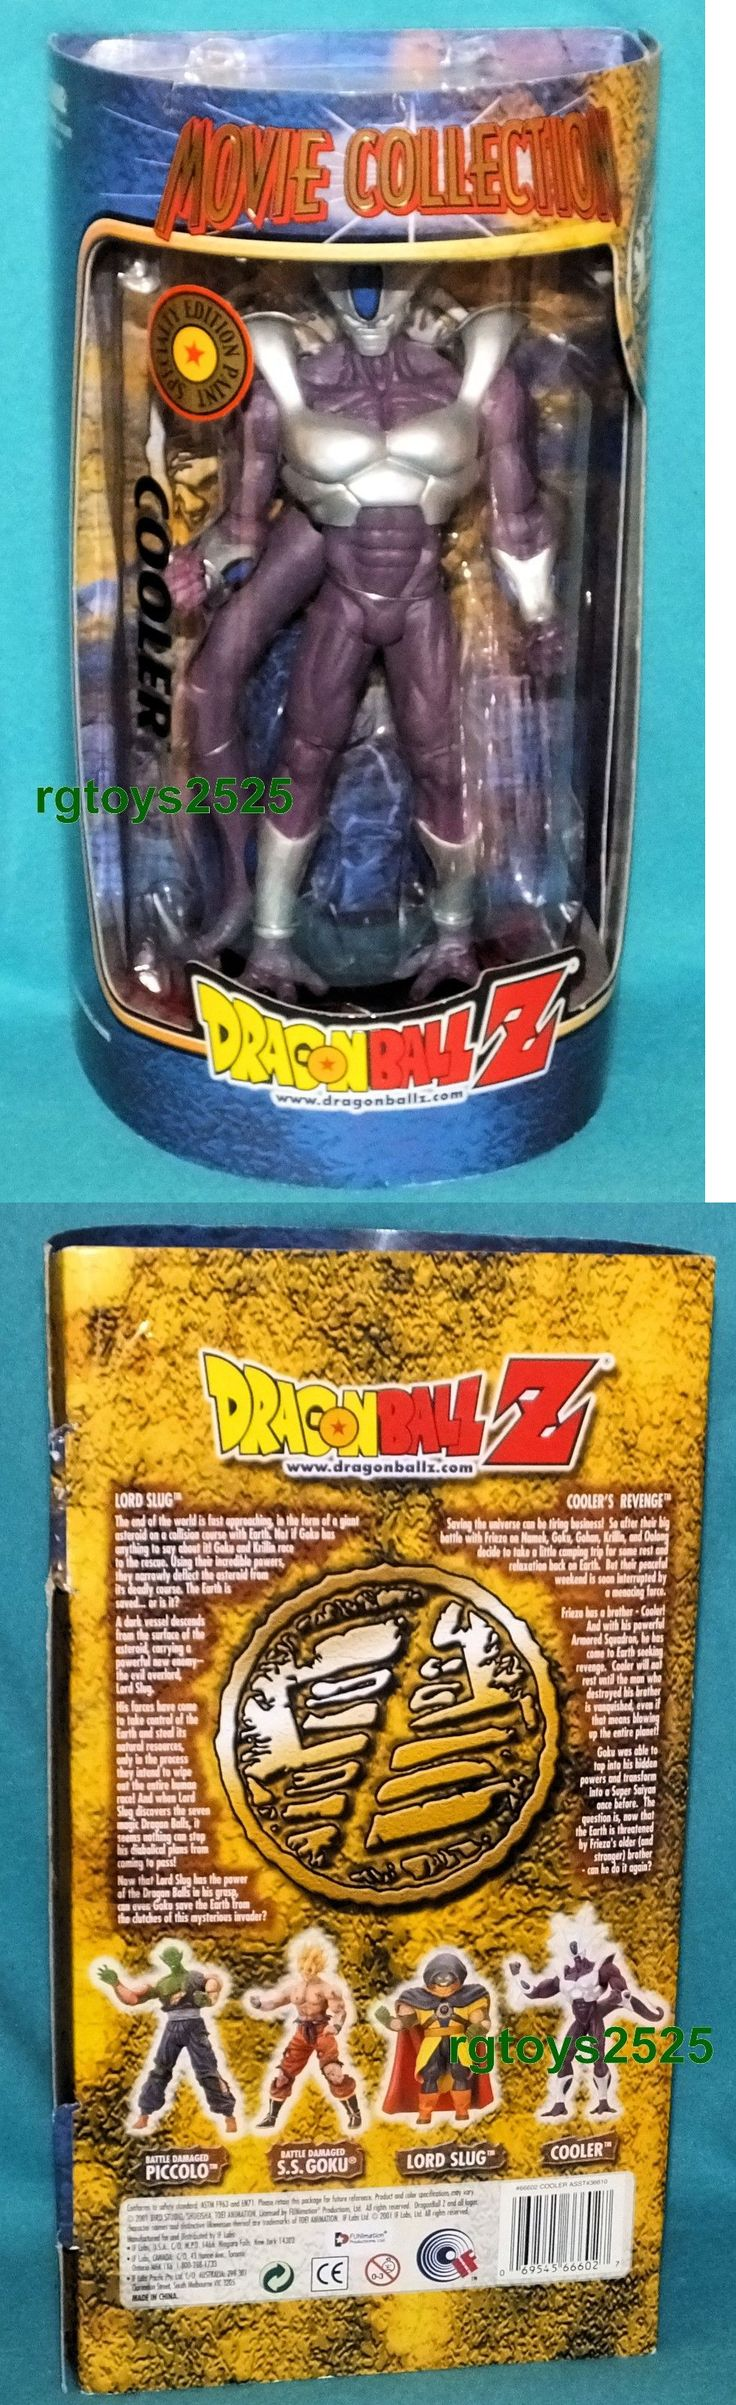 DragonBall Z 7117: Dragonball Z Movie Collection Special Paint Cooler New 10 Inch Factory Sealed -> BUY IT NOW ONLY: $249.99 on eBay!